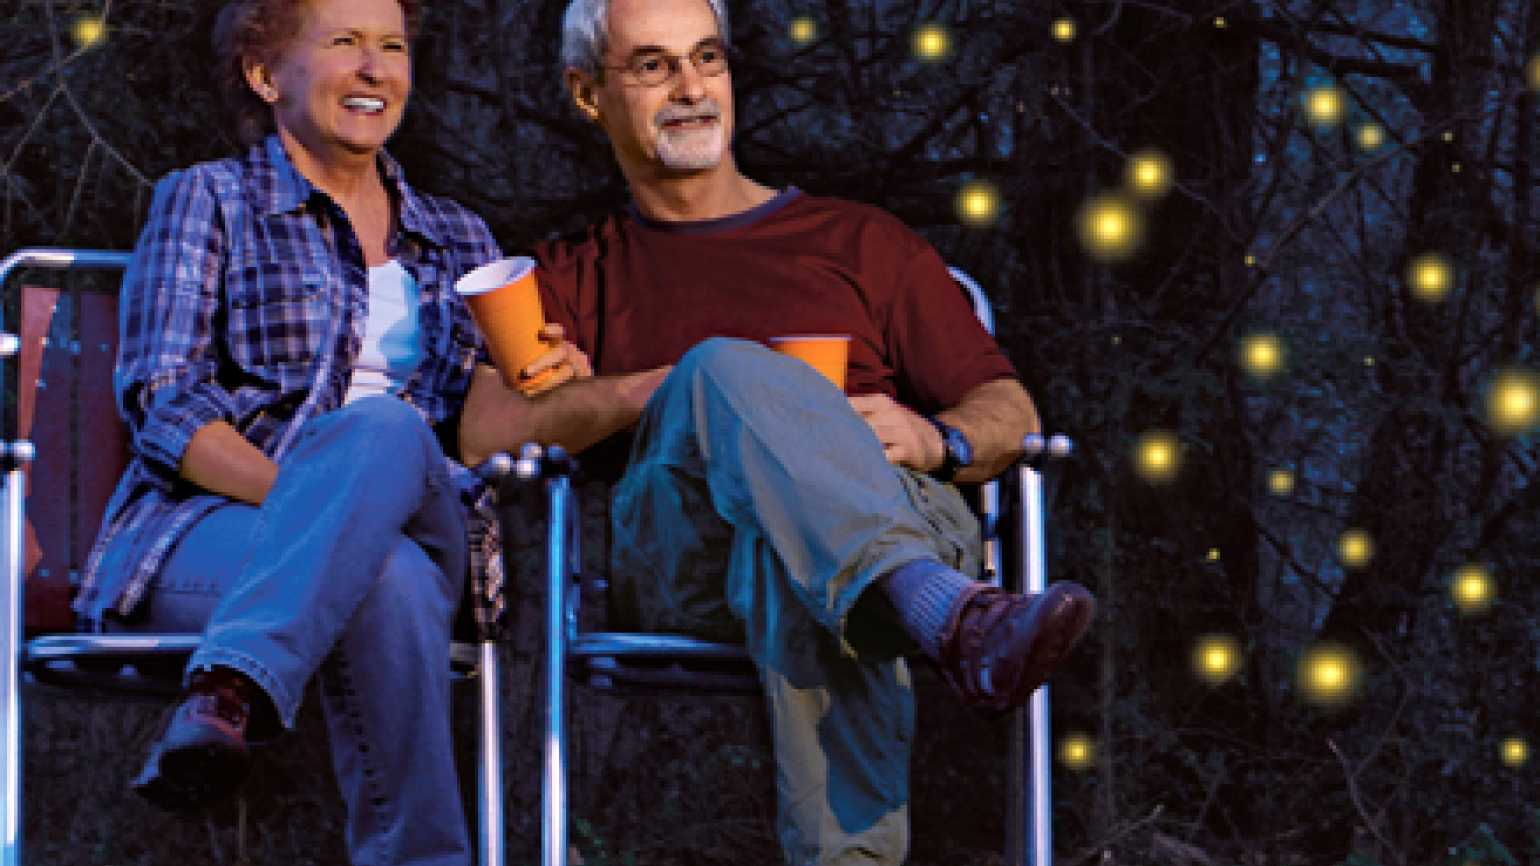 Jennie Ivey and her husband George are awed by fireflies